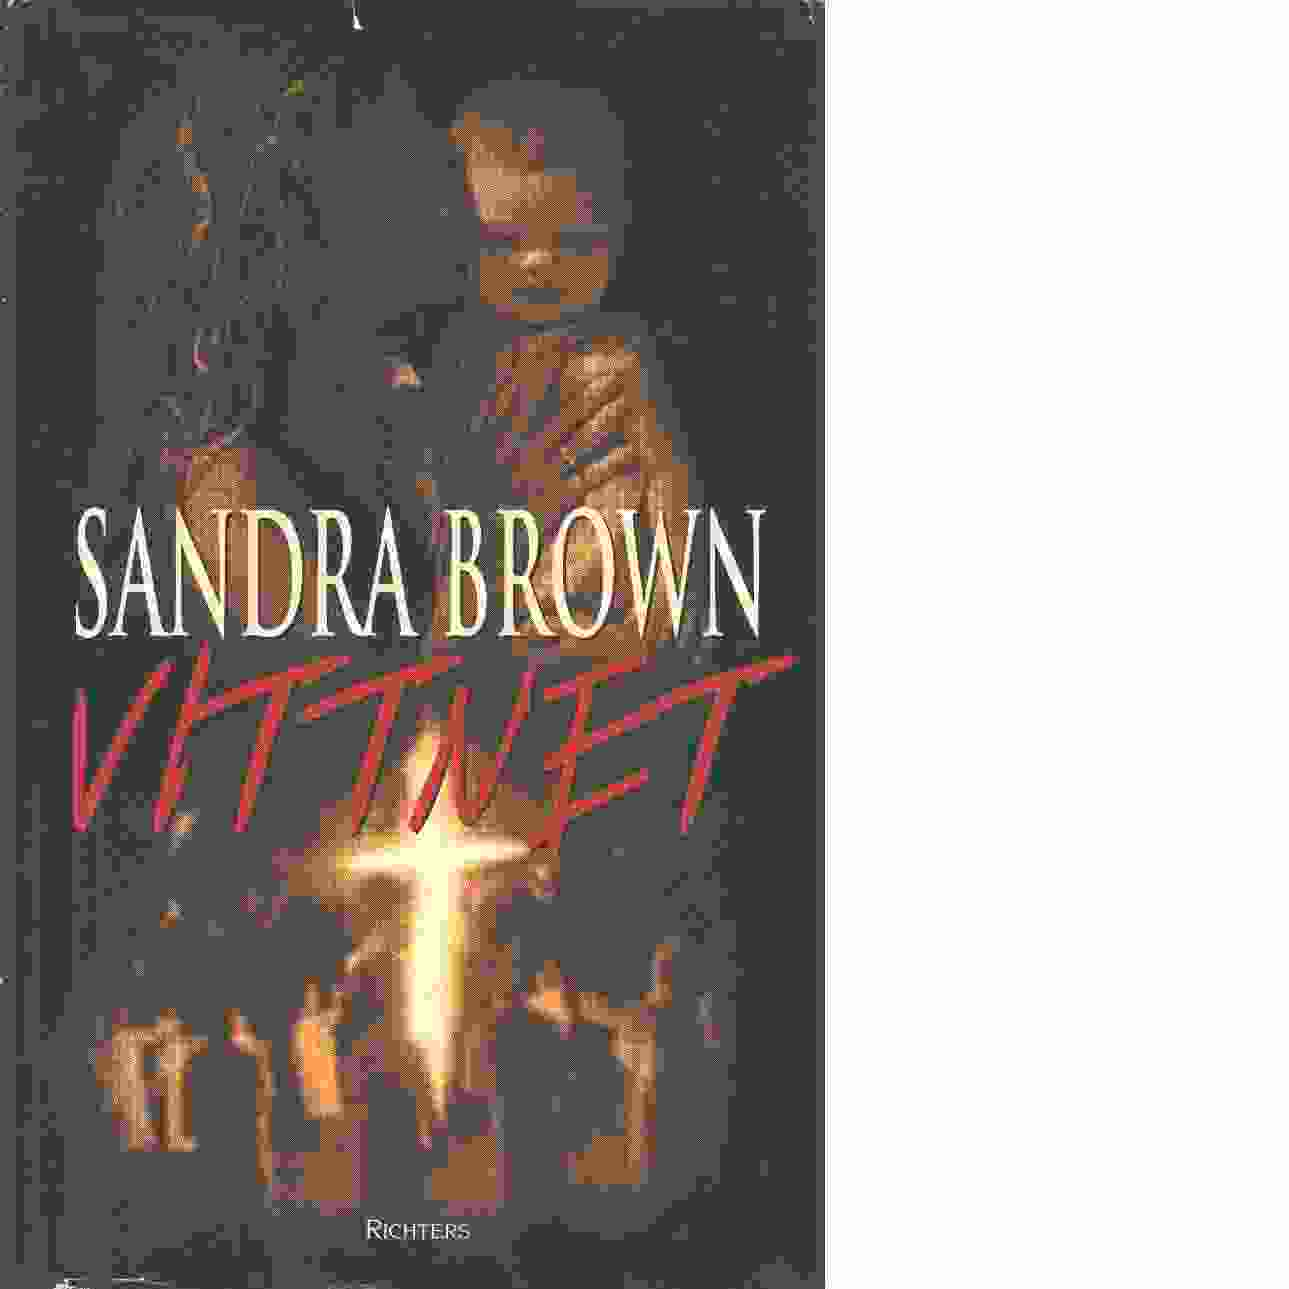 Vittnet - Brown, Sandra